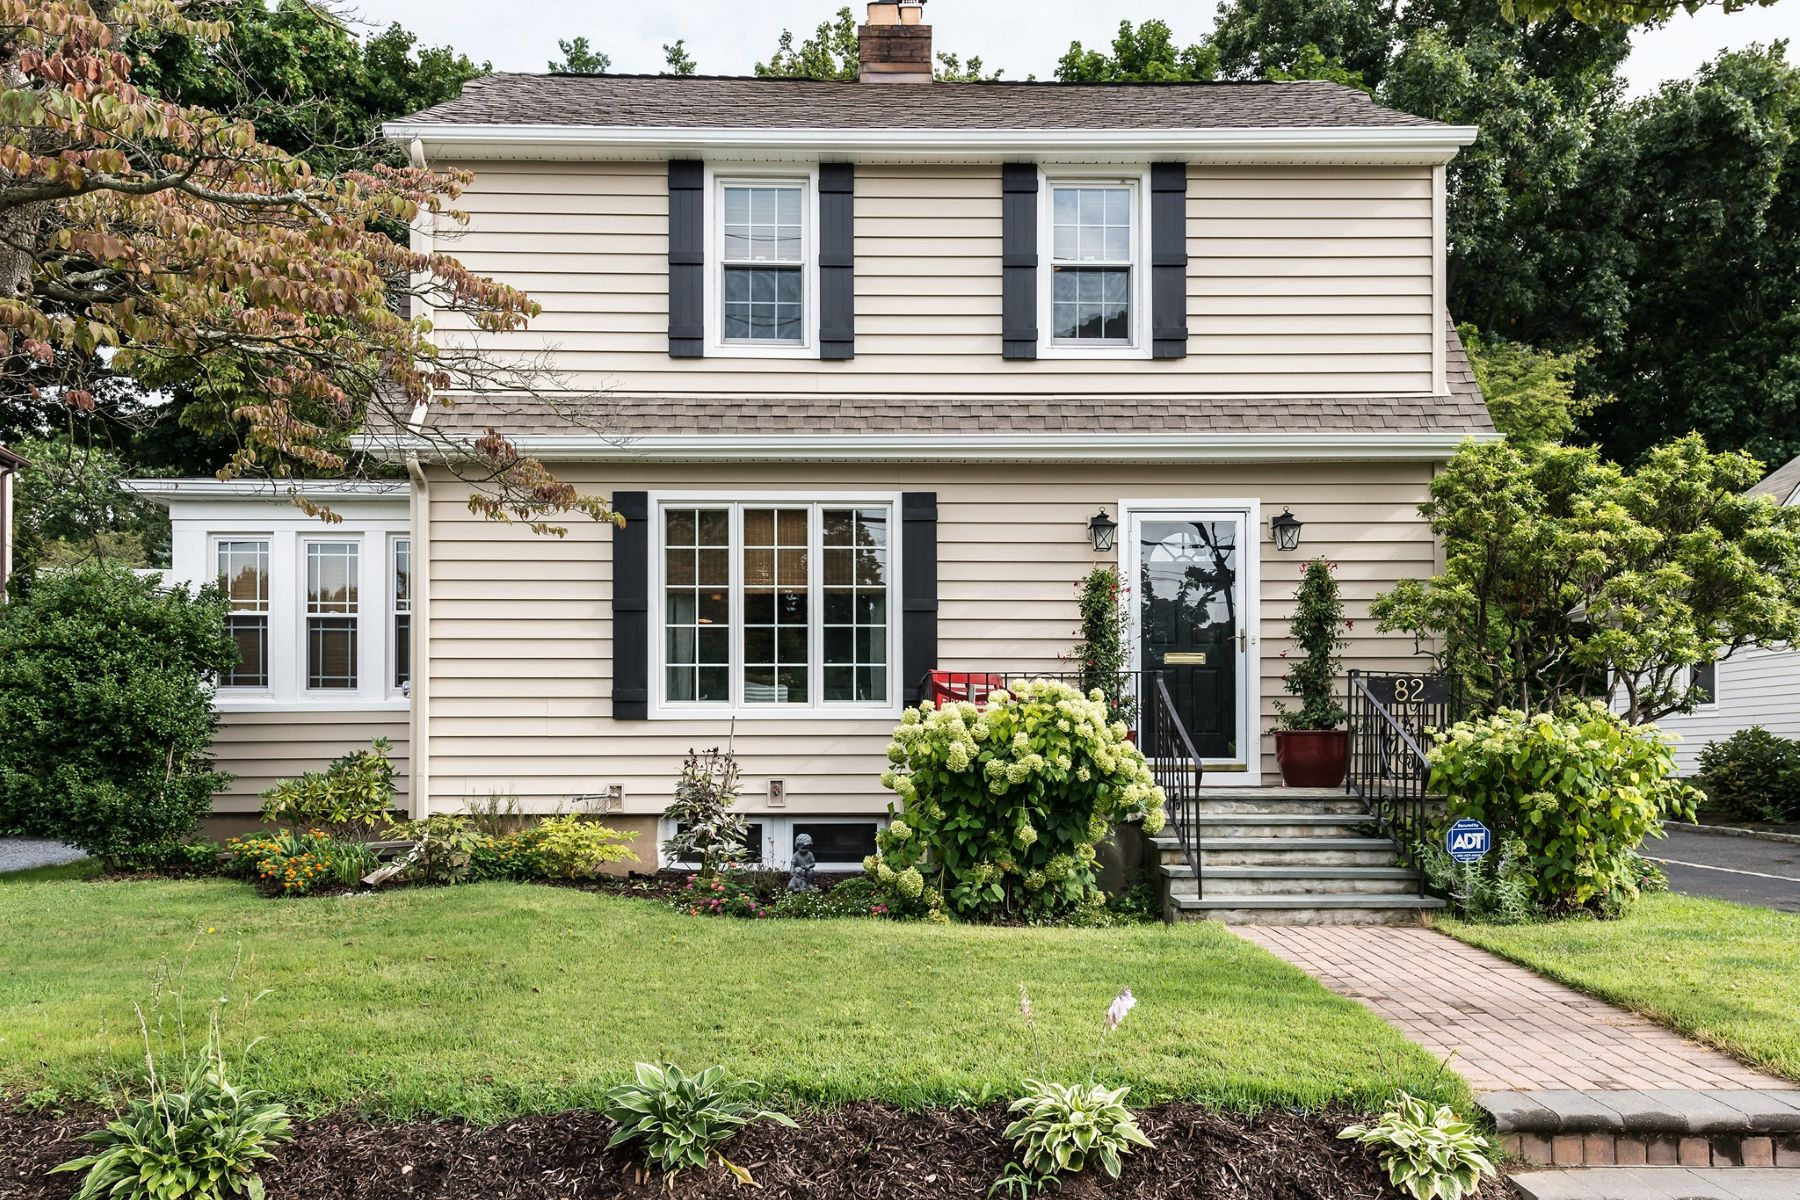 Single Family Home for Sale at 82 North St , Locust Valley, NY 11560 82 North St, Locust Valley, New York, 11560 United States